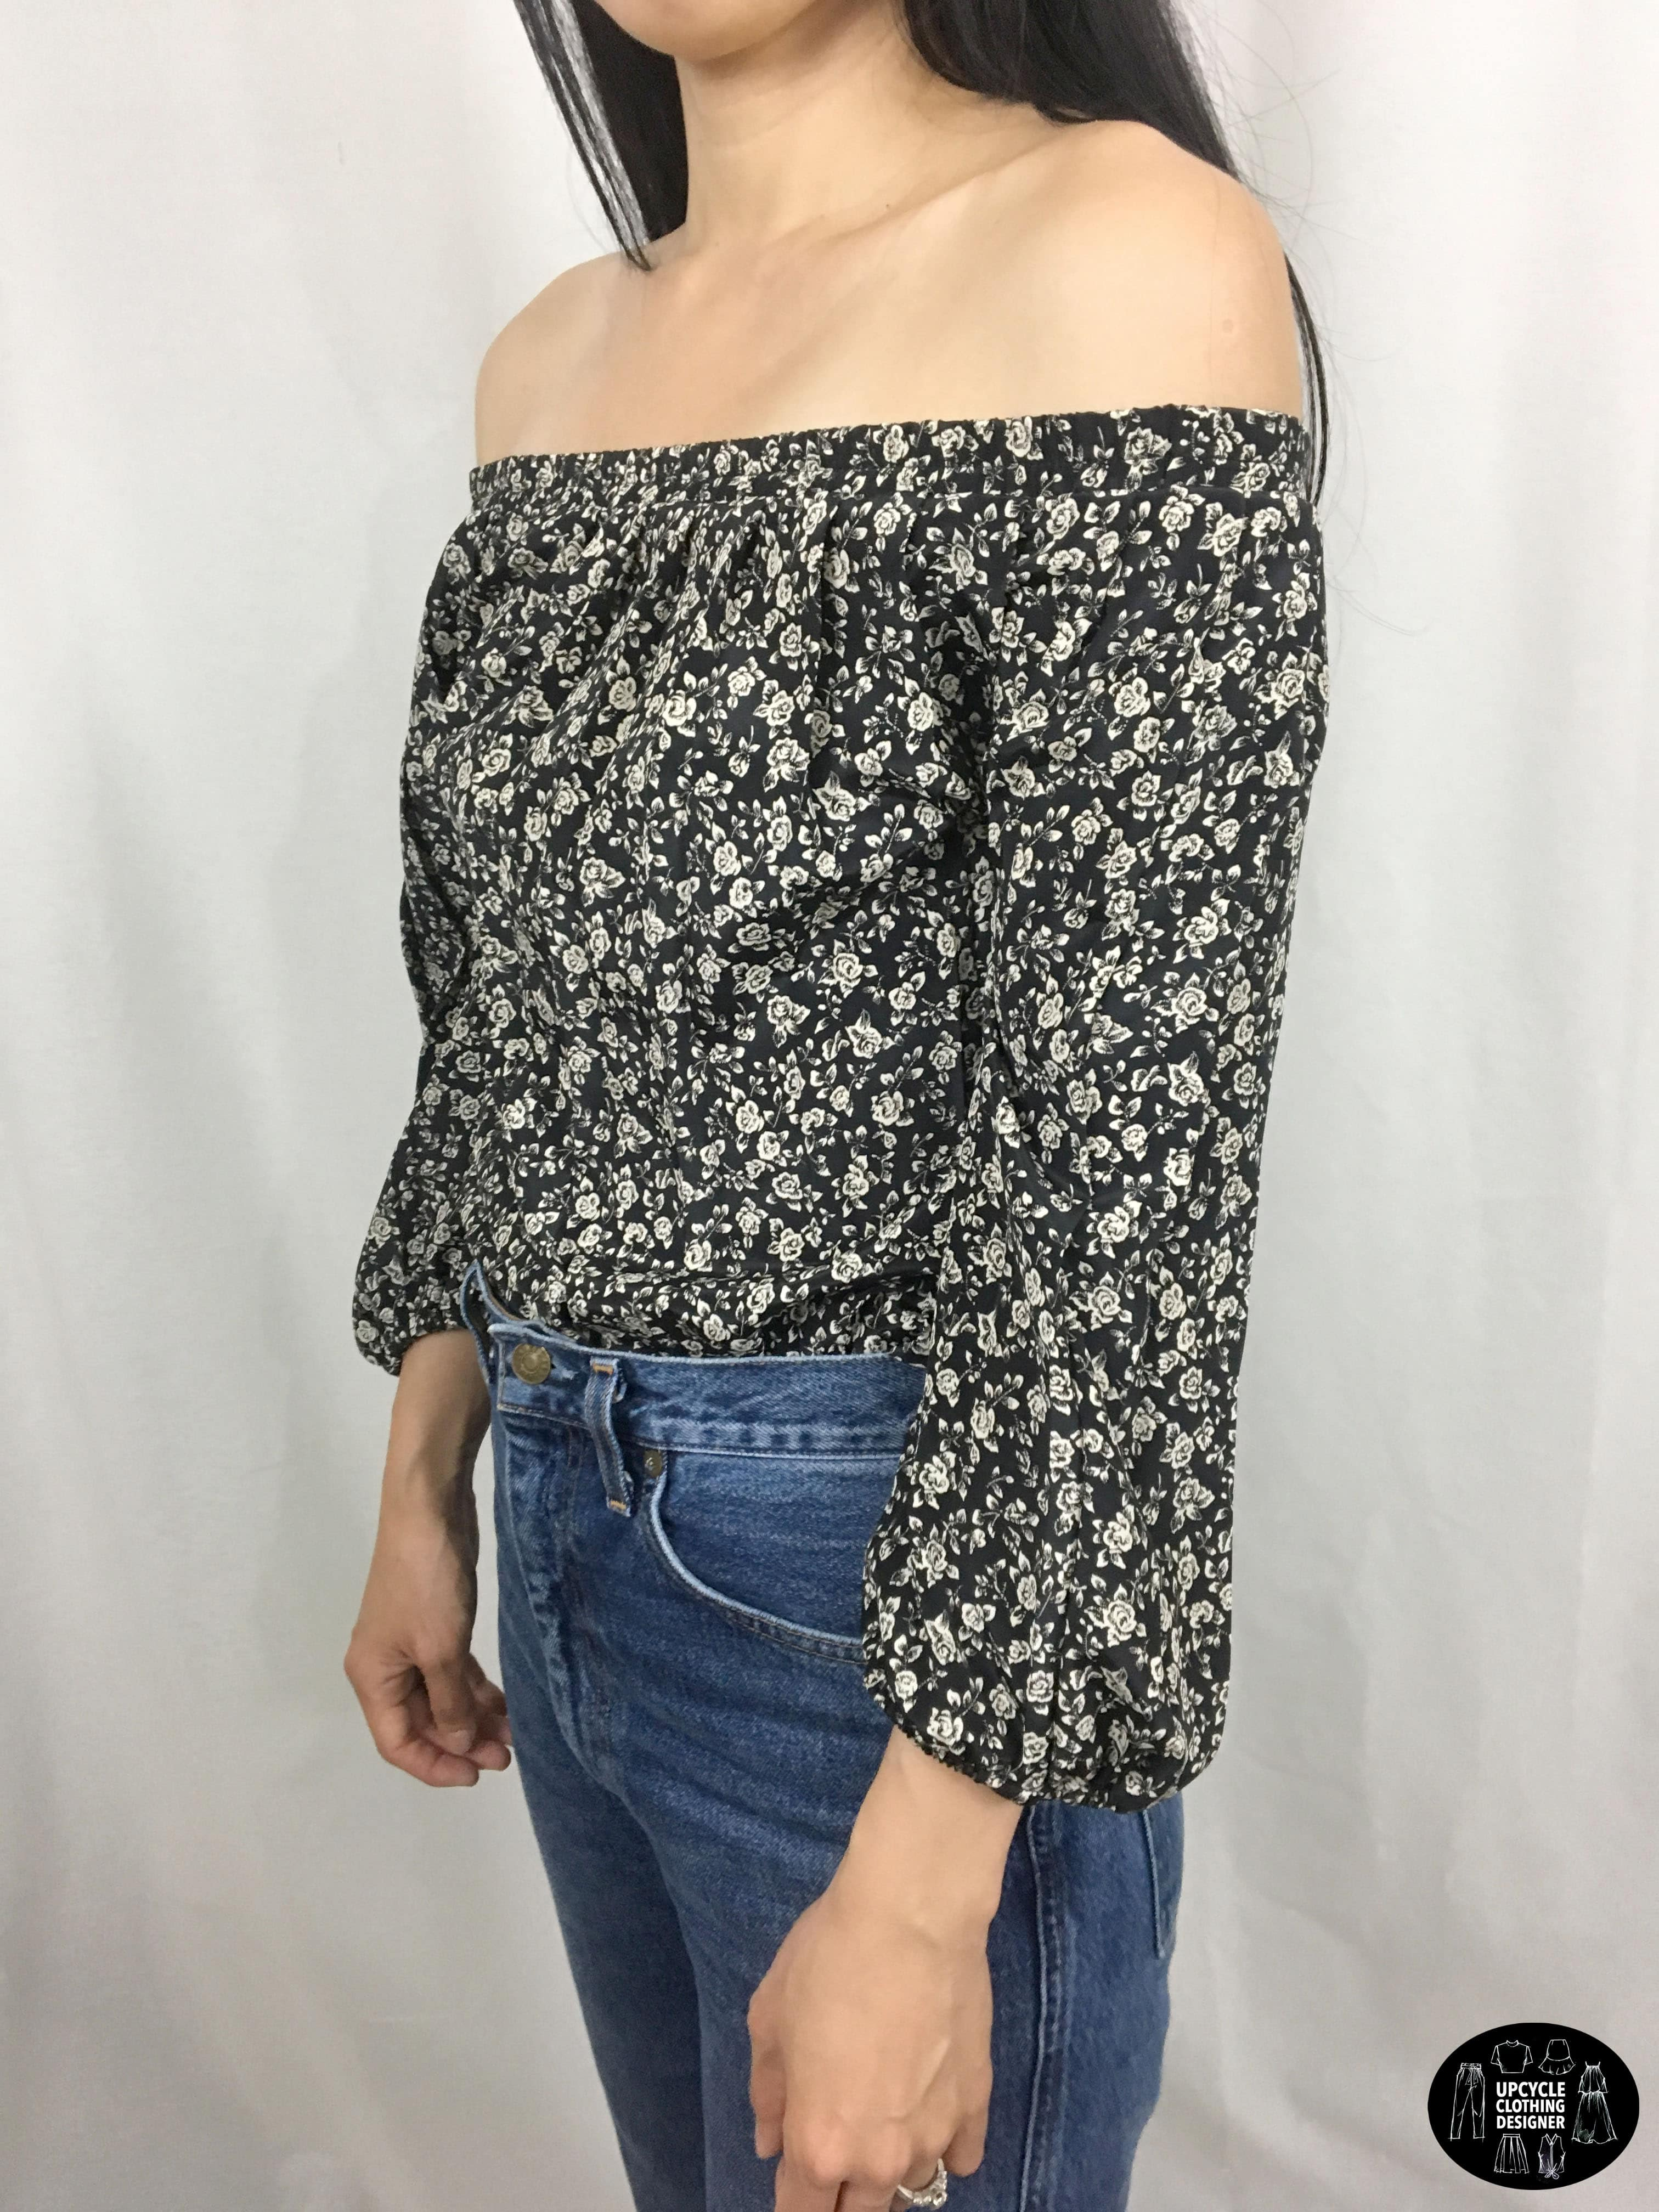 Sideview of off the shoulder top from refashion skirt